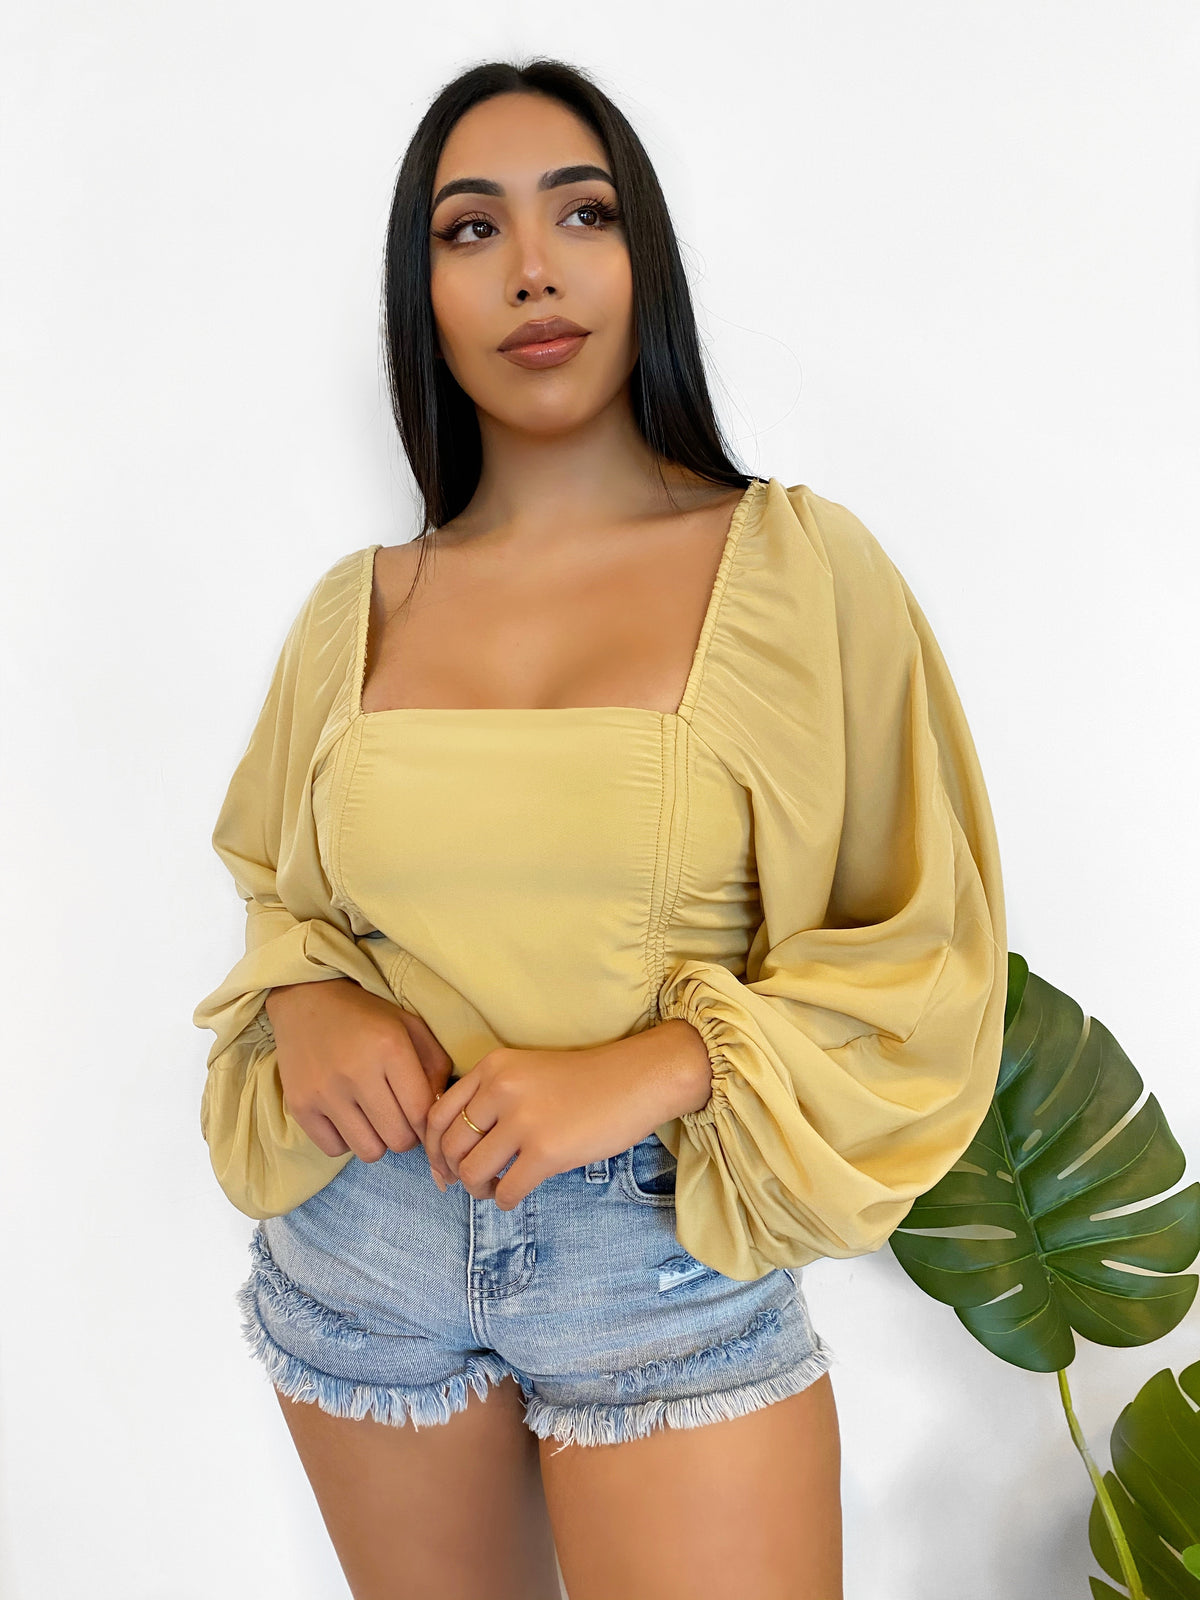 bell bottom sleeves, off the shoulder crop top, scrunch from each side